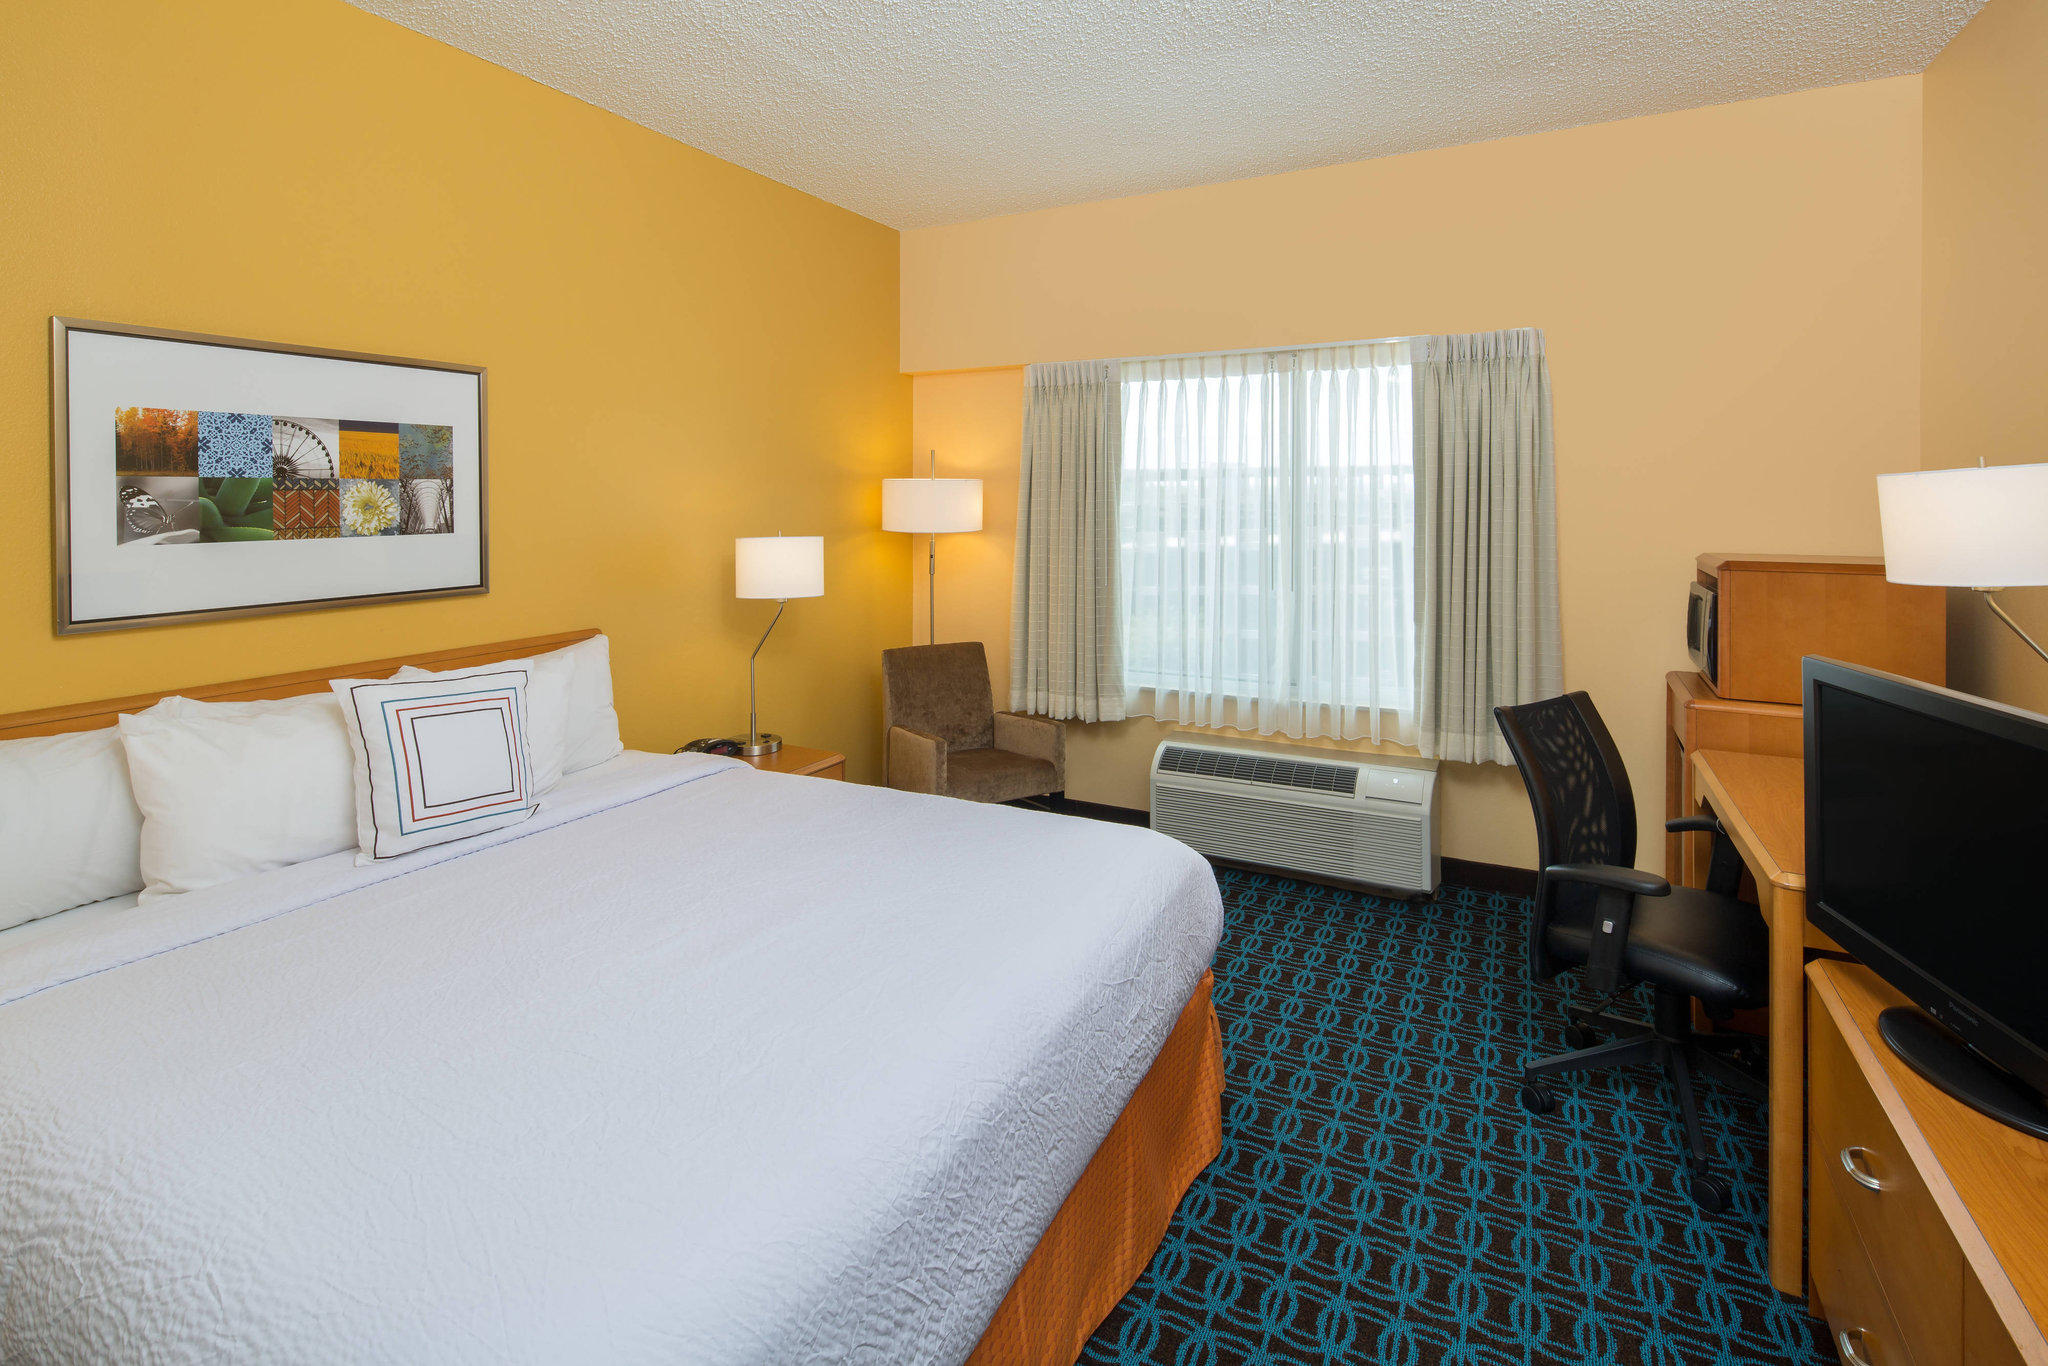 Fairfield Inn & Suites by Marriott San Antonio Airport/North Star Mall